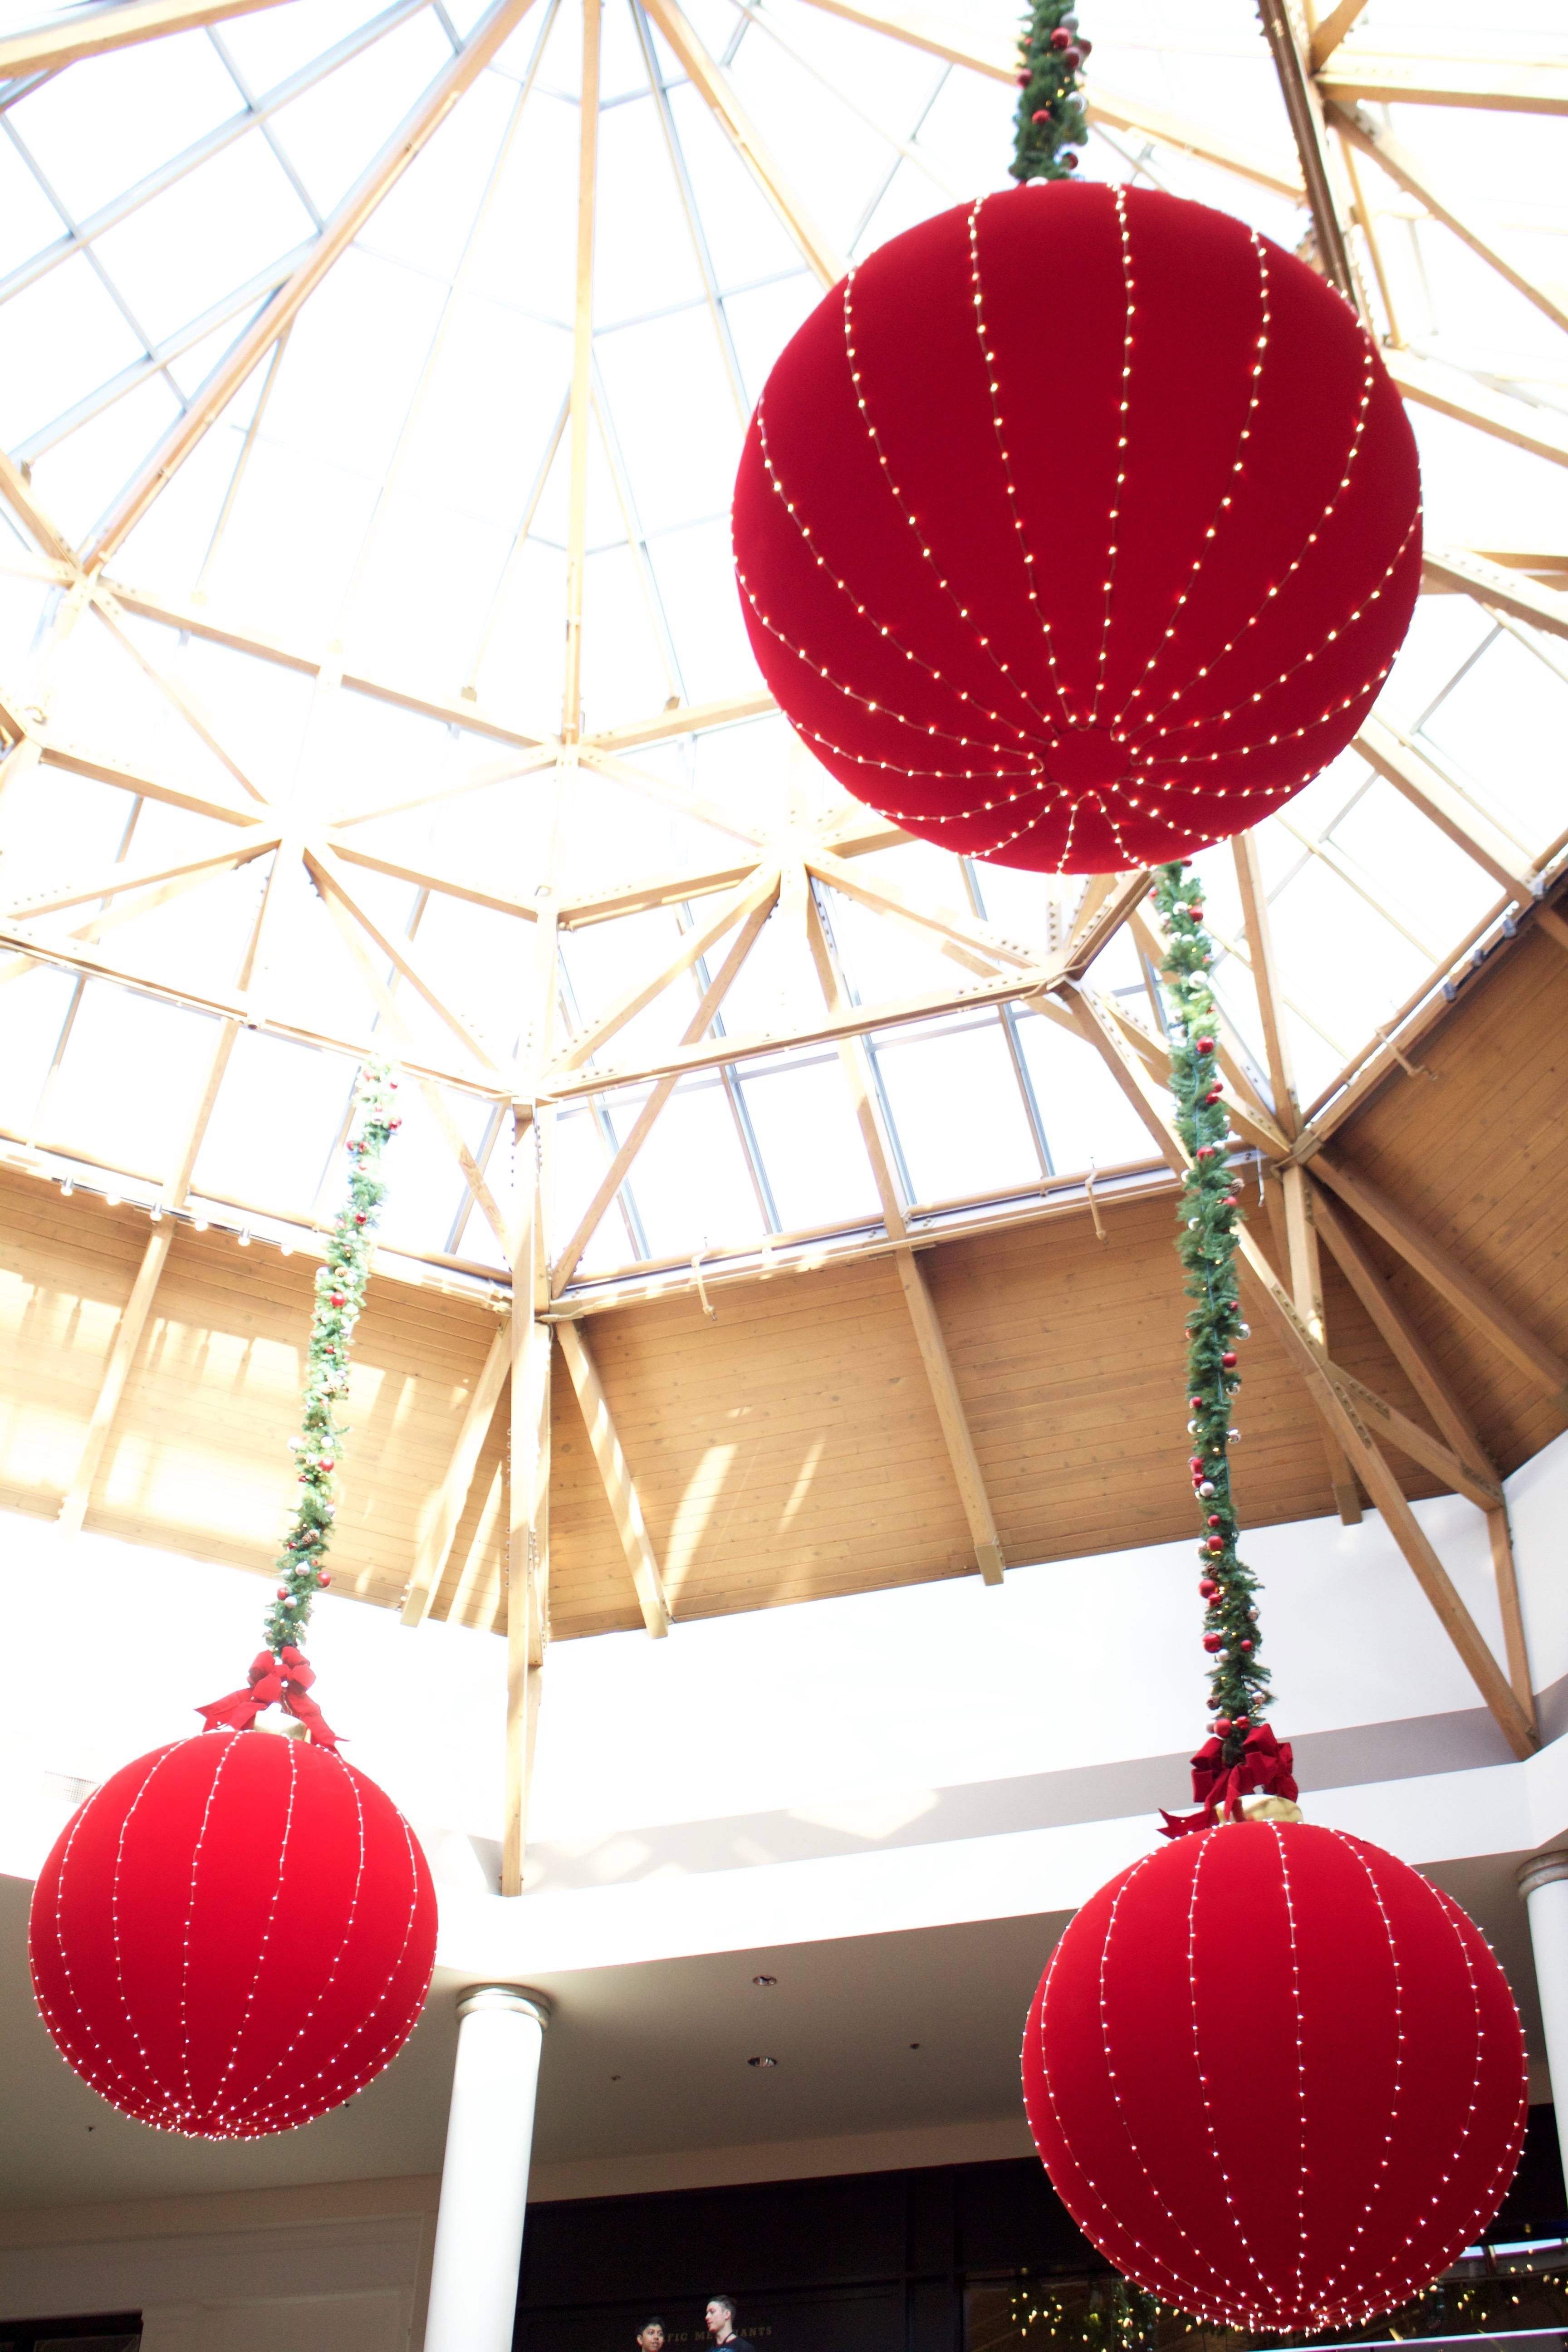 Brea Mall holiday hours